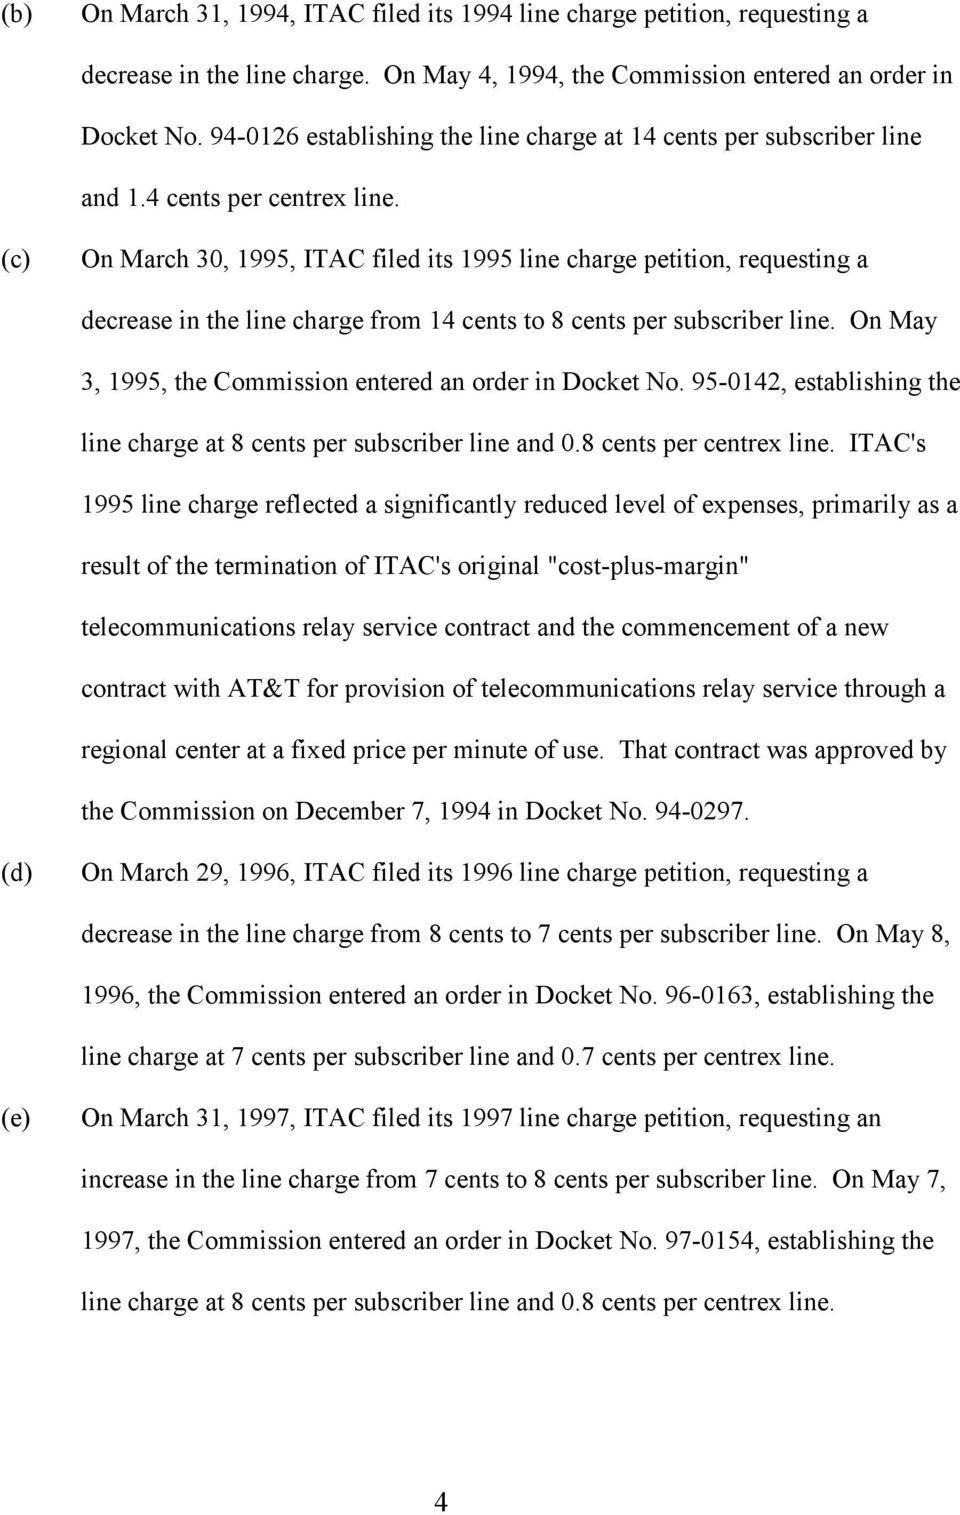 (c) On March 30, 1995, ITAC filed its 1995 line charge petition, requesting a decrease in the line charge from 14 cents to 8 cents per subscriber line.